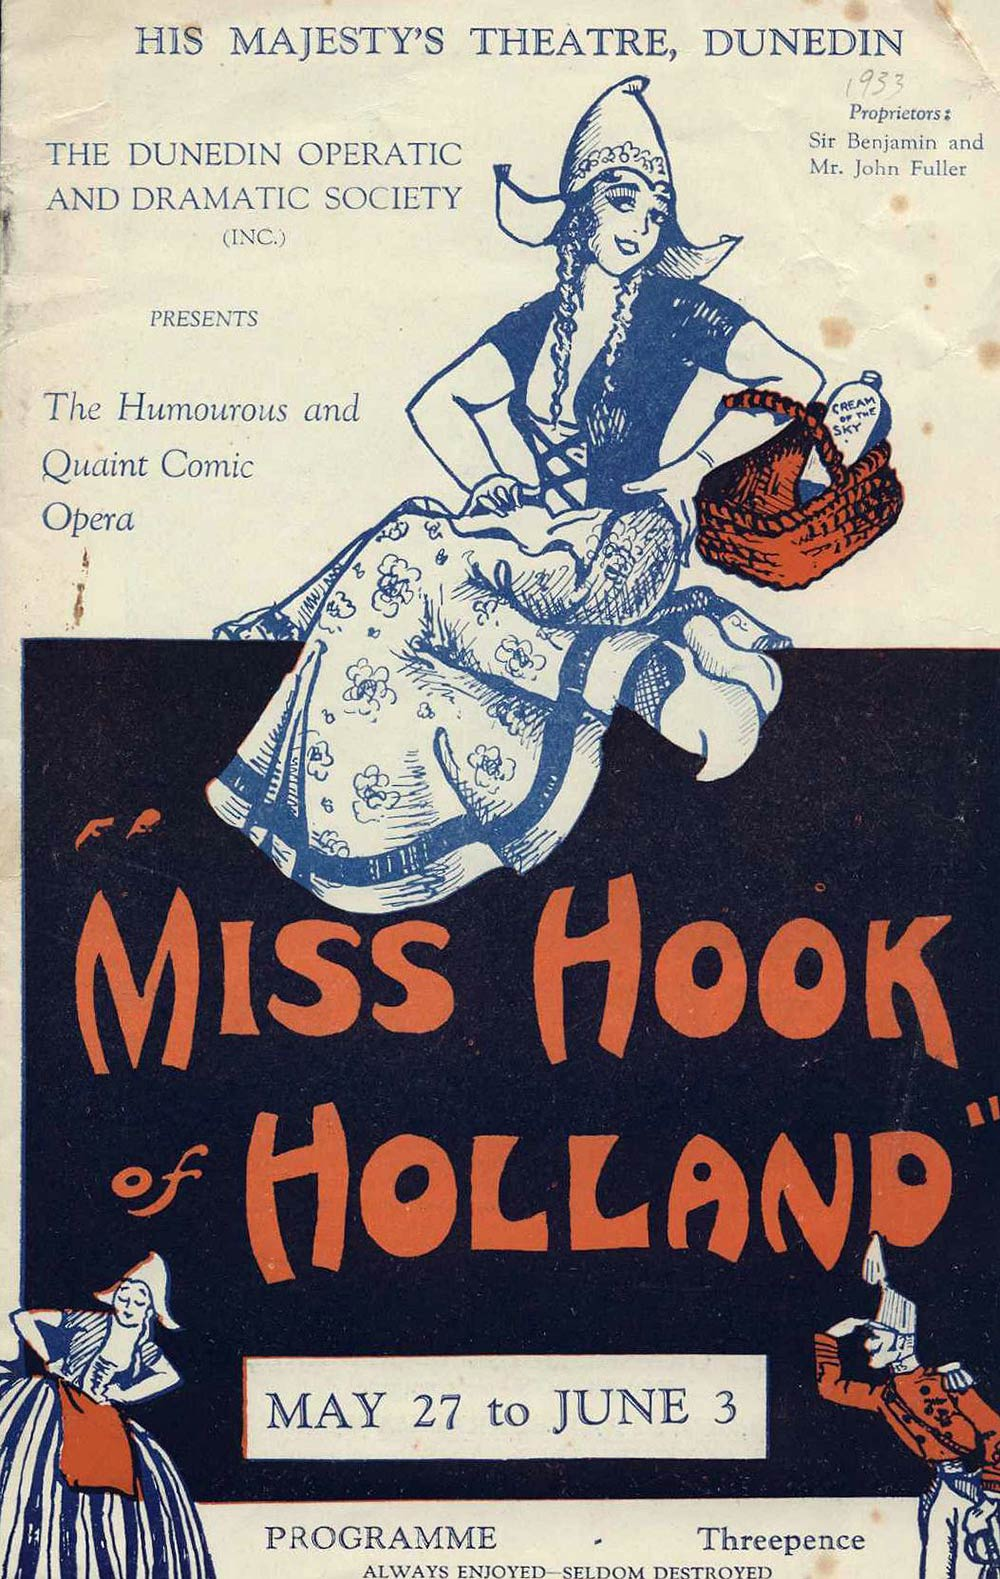 <em>Miss Hook of Holland</em>. Book by Paul Rubens and Austin Hurgon; music and lyrics by Paul Rubens. (Dunedin Operatic & Dramatic Society). His Majesty's Theatre, Dunedin, May 27-June 3, 1933.